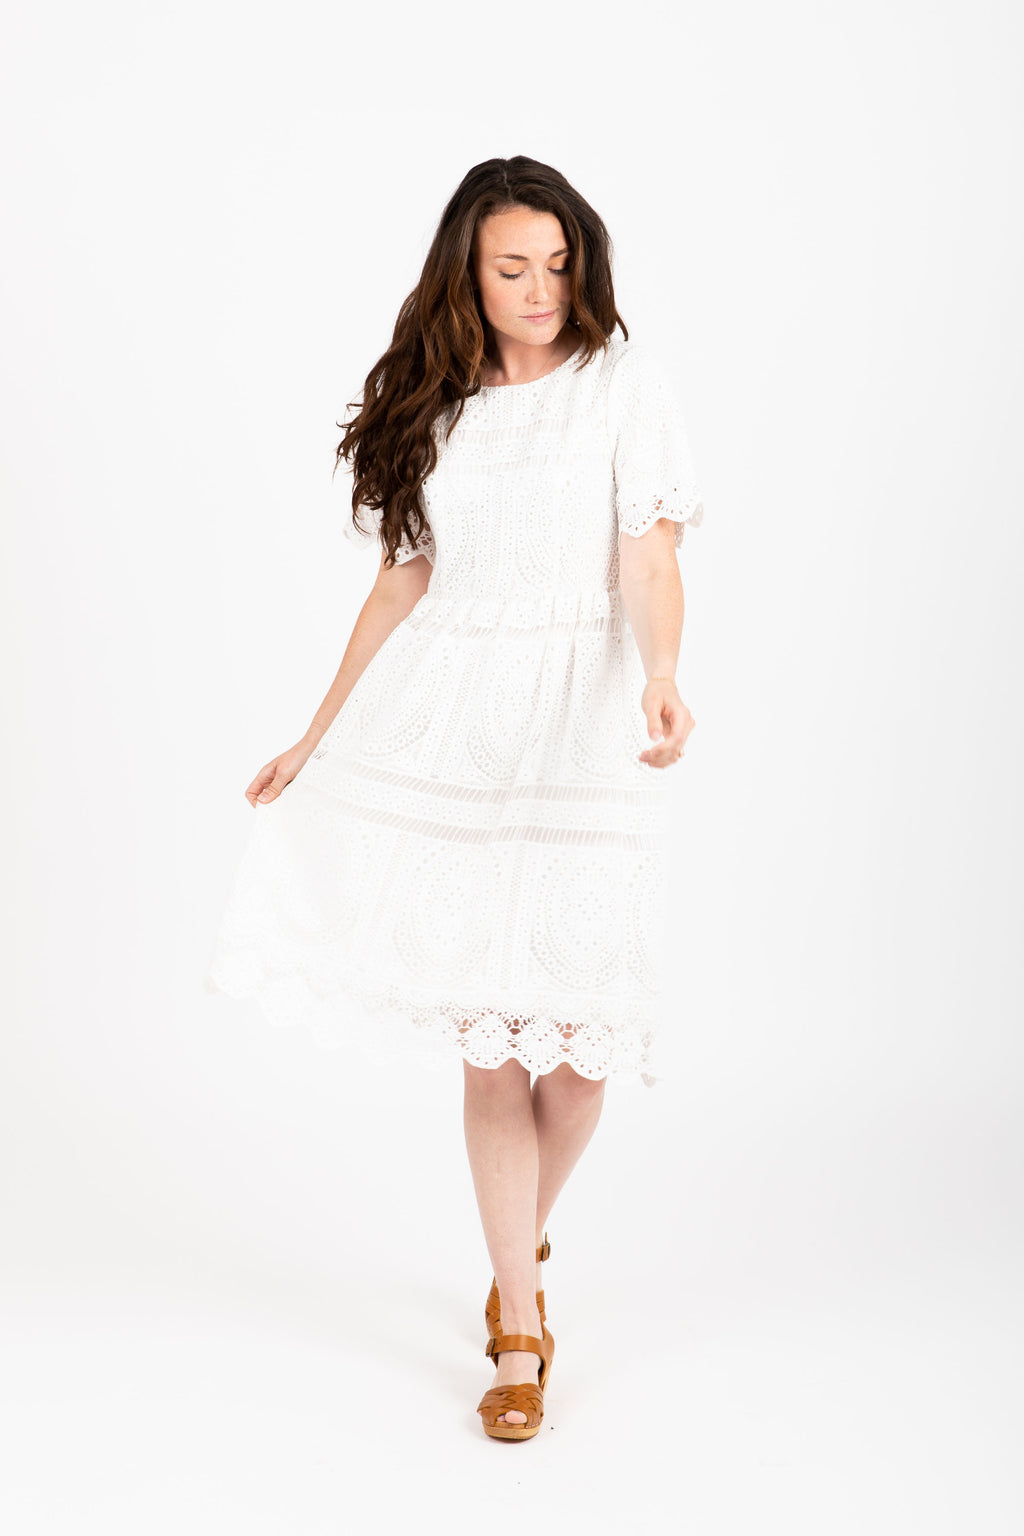 The Chenoa Lace Detail Dress in White